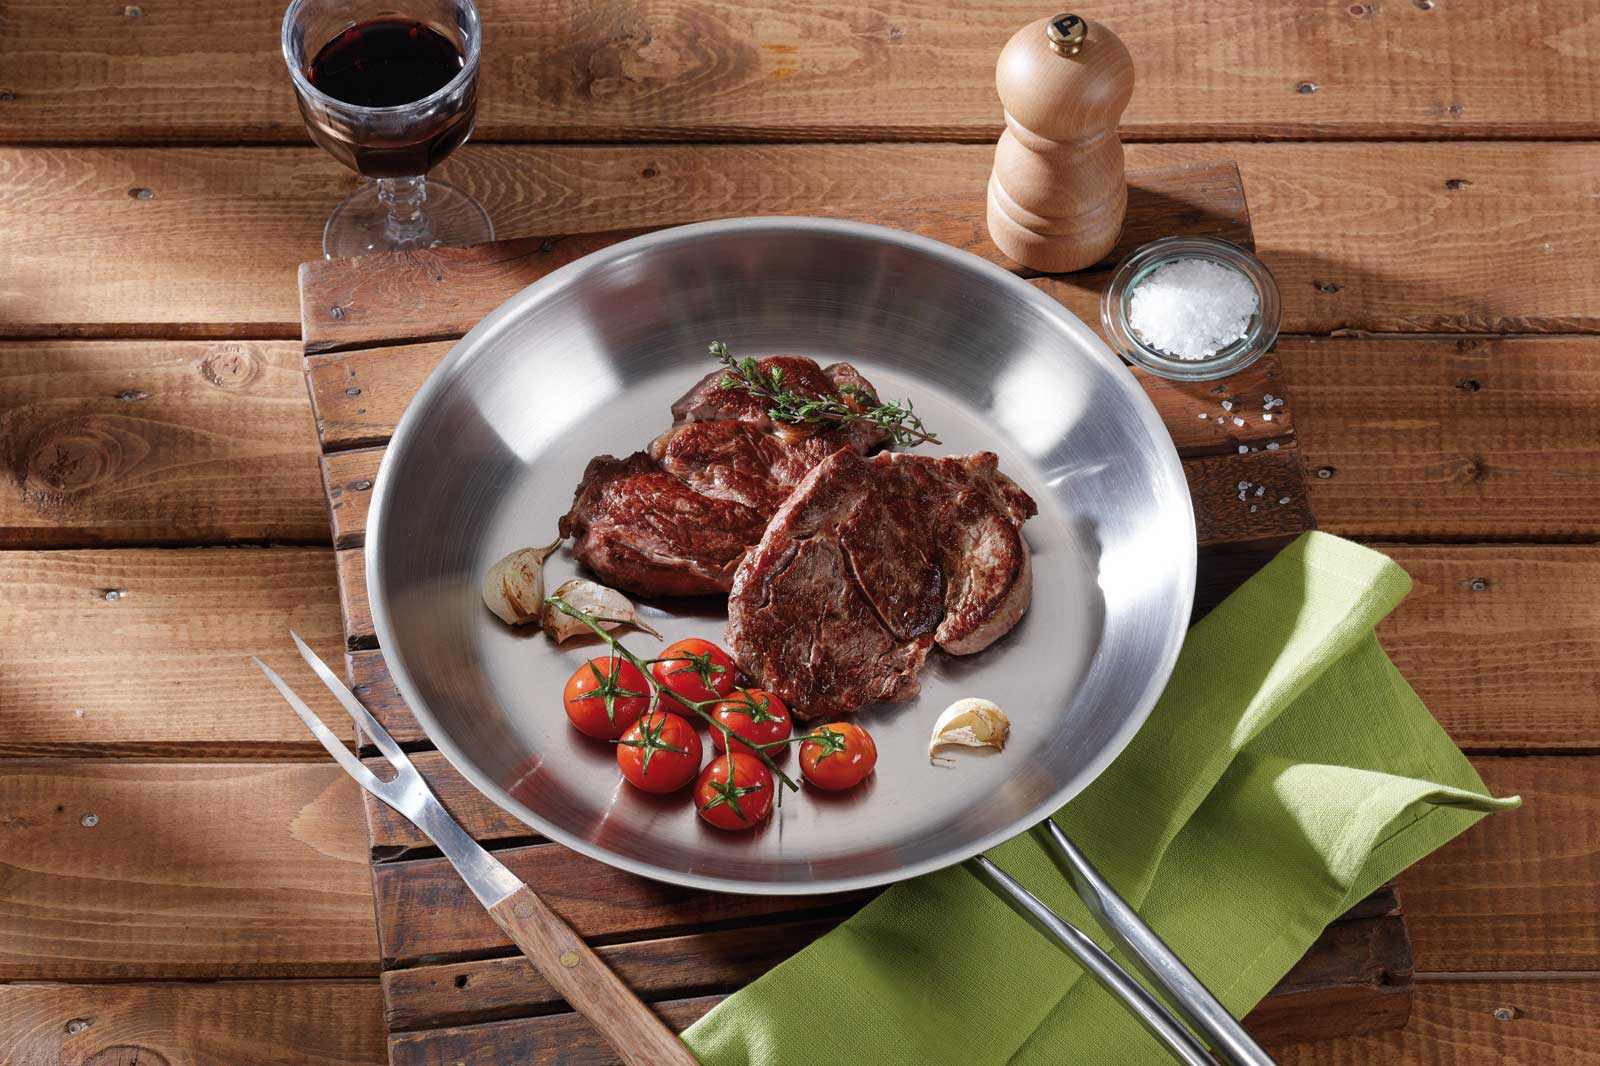 Frying pans by Noser-Inox, Swiss Made